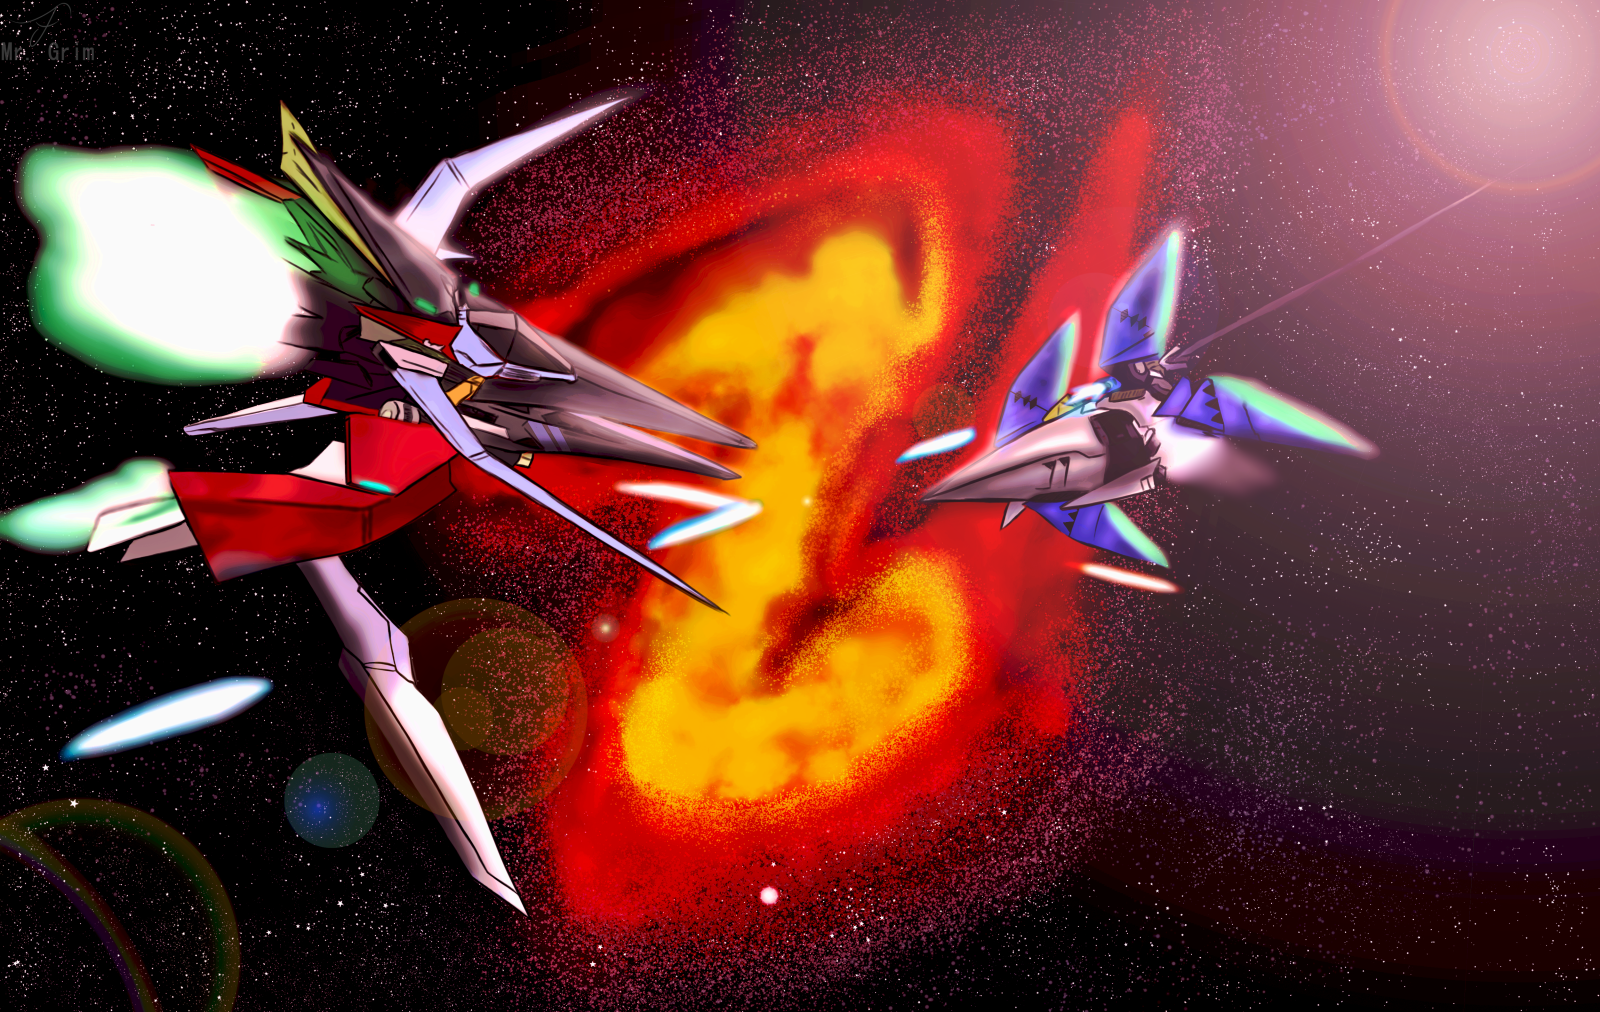 Playtime is over Star Fox!